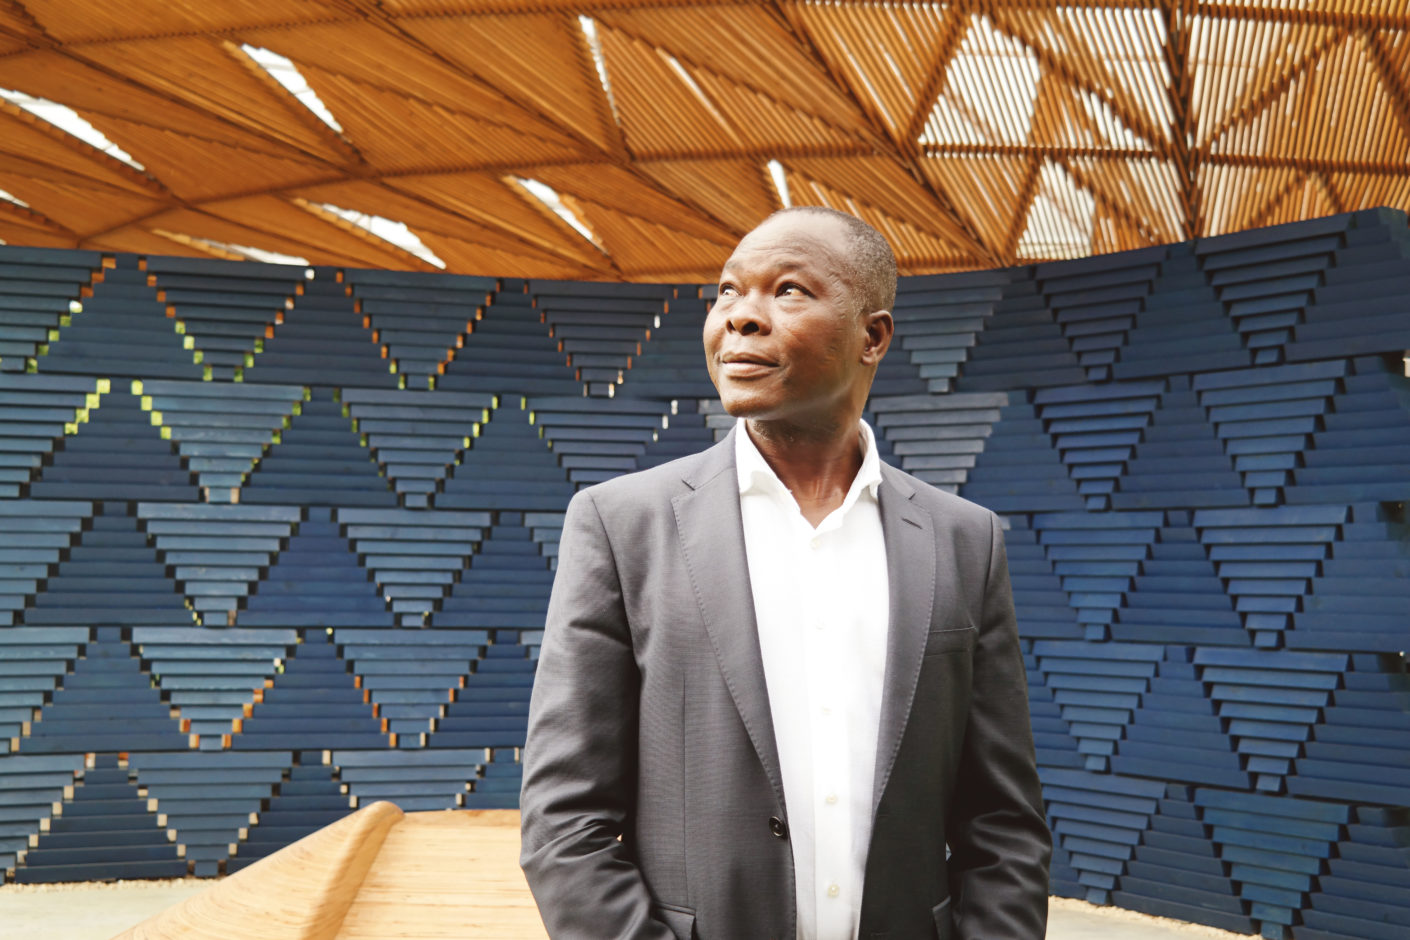 Born in Burkina Faso, Francis Kéré is the first African architect to design the pavilion.